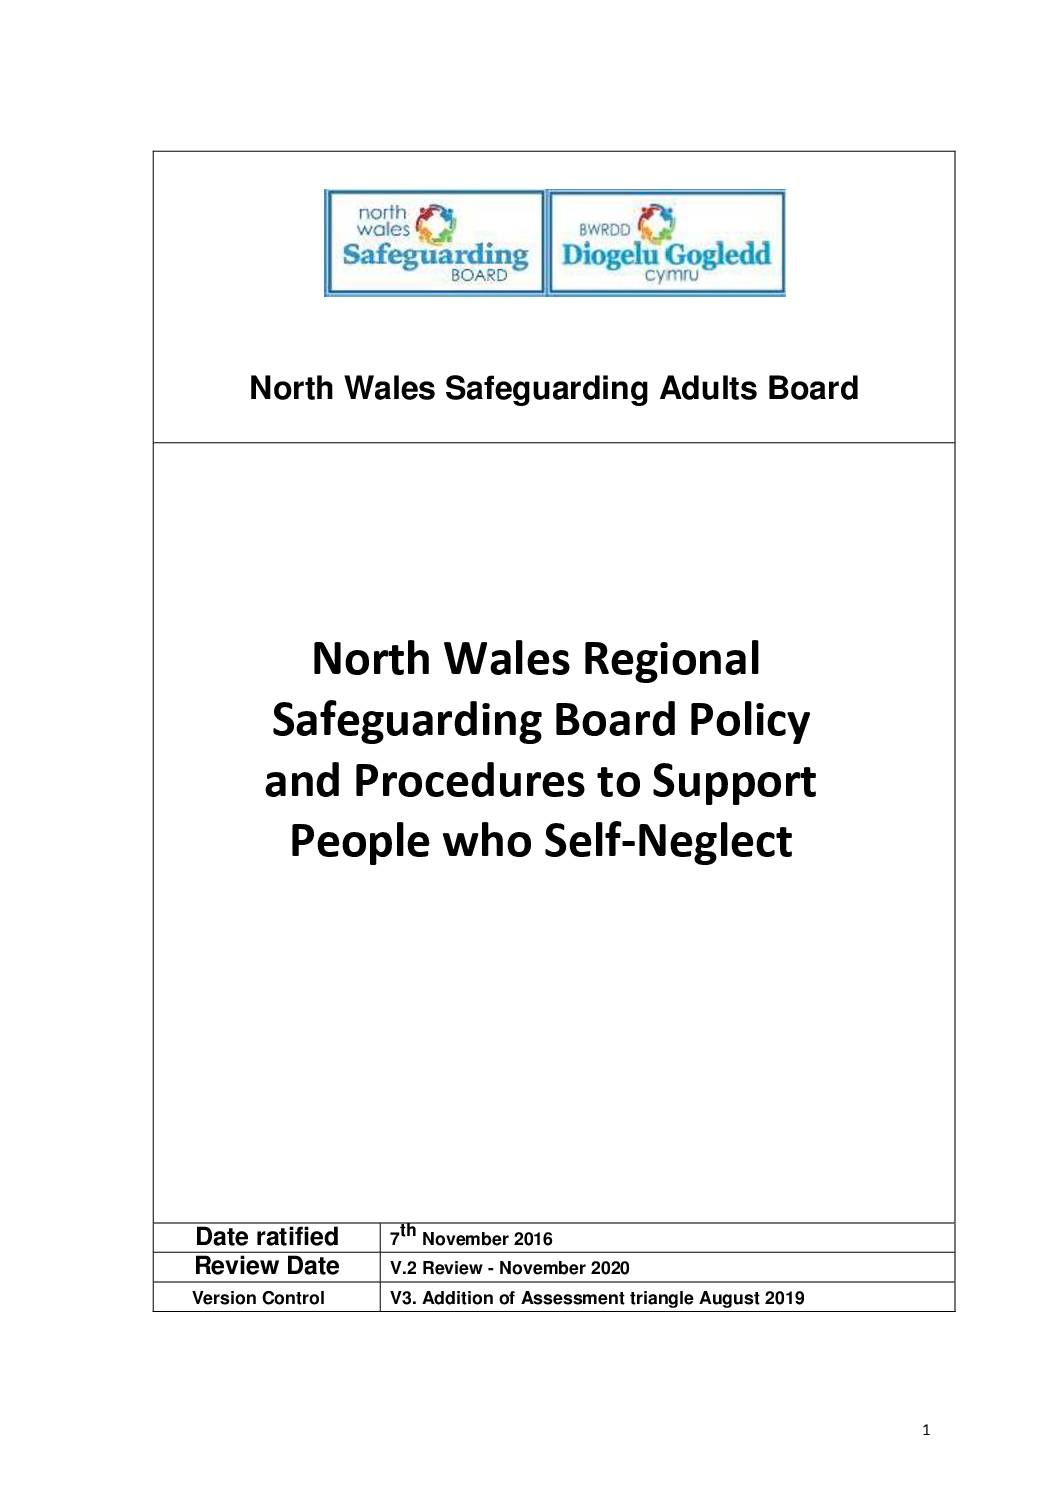 North Wales Self Neglect Policy and Procedure